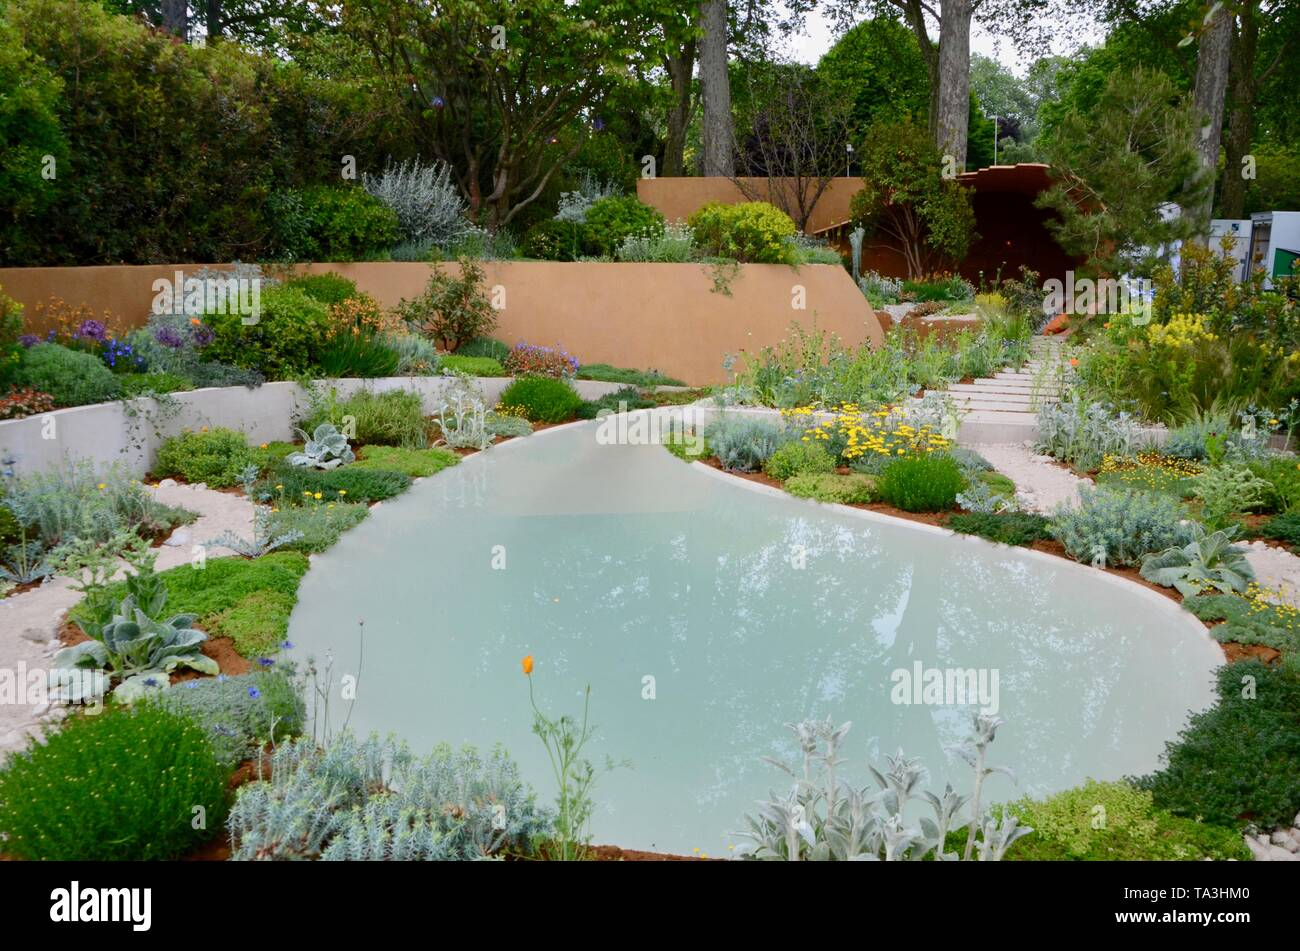 The Dubai Majlis Garden at the 2019 rhs chelsea flower show in london england - Stock Image